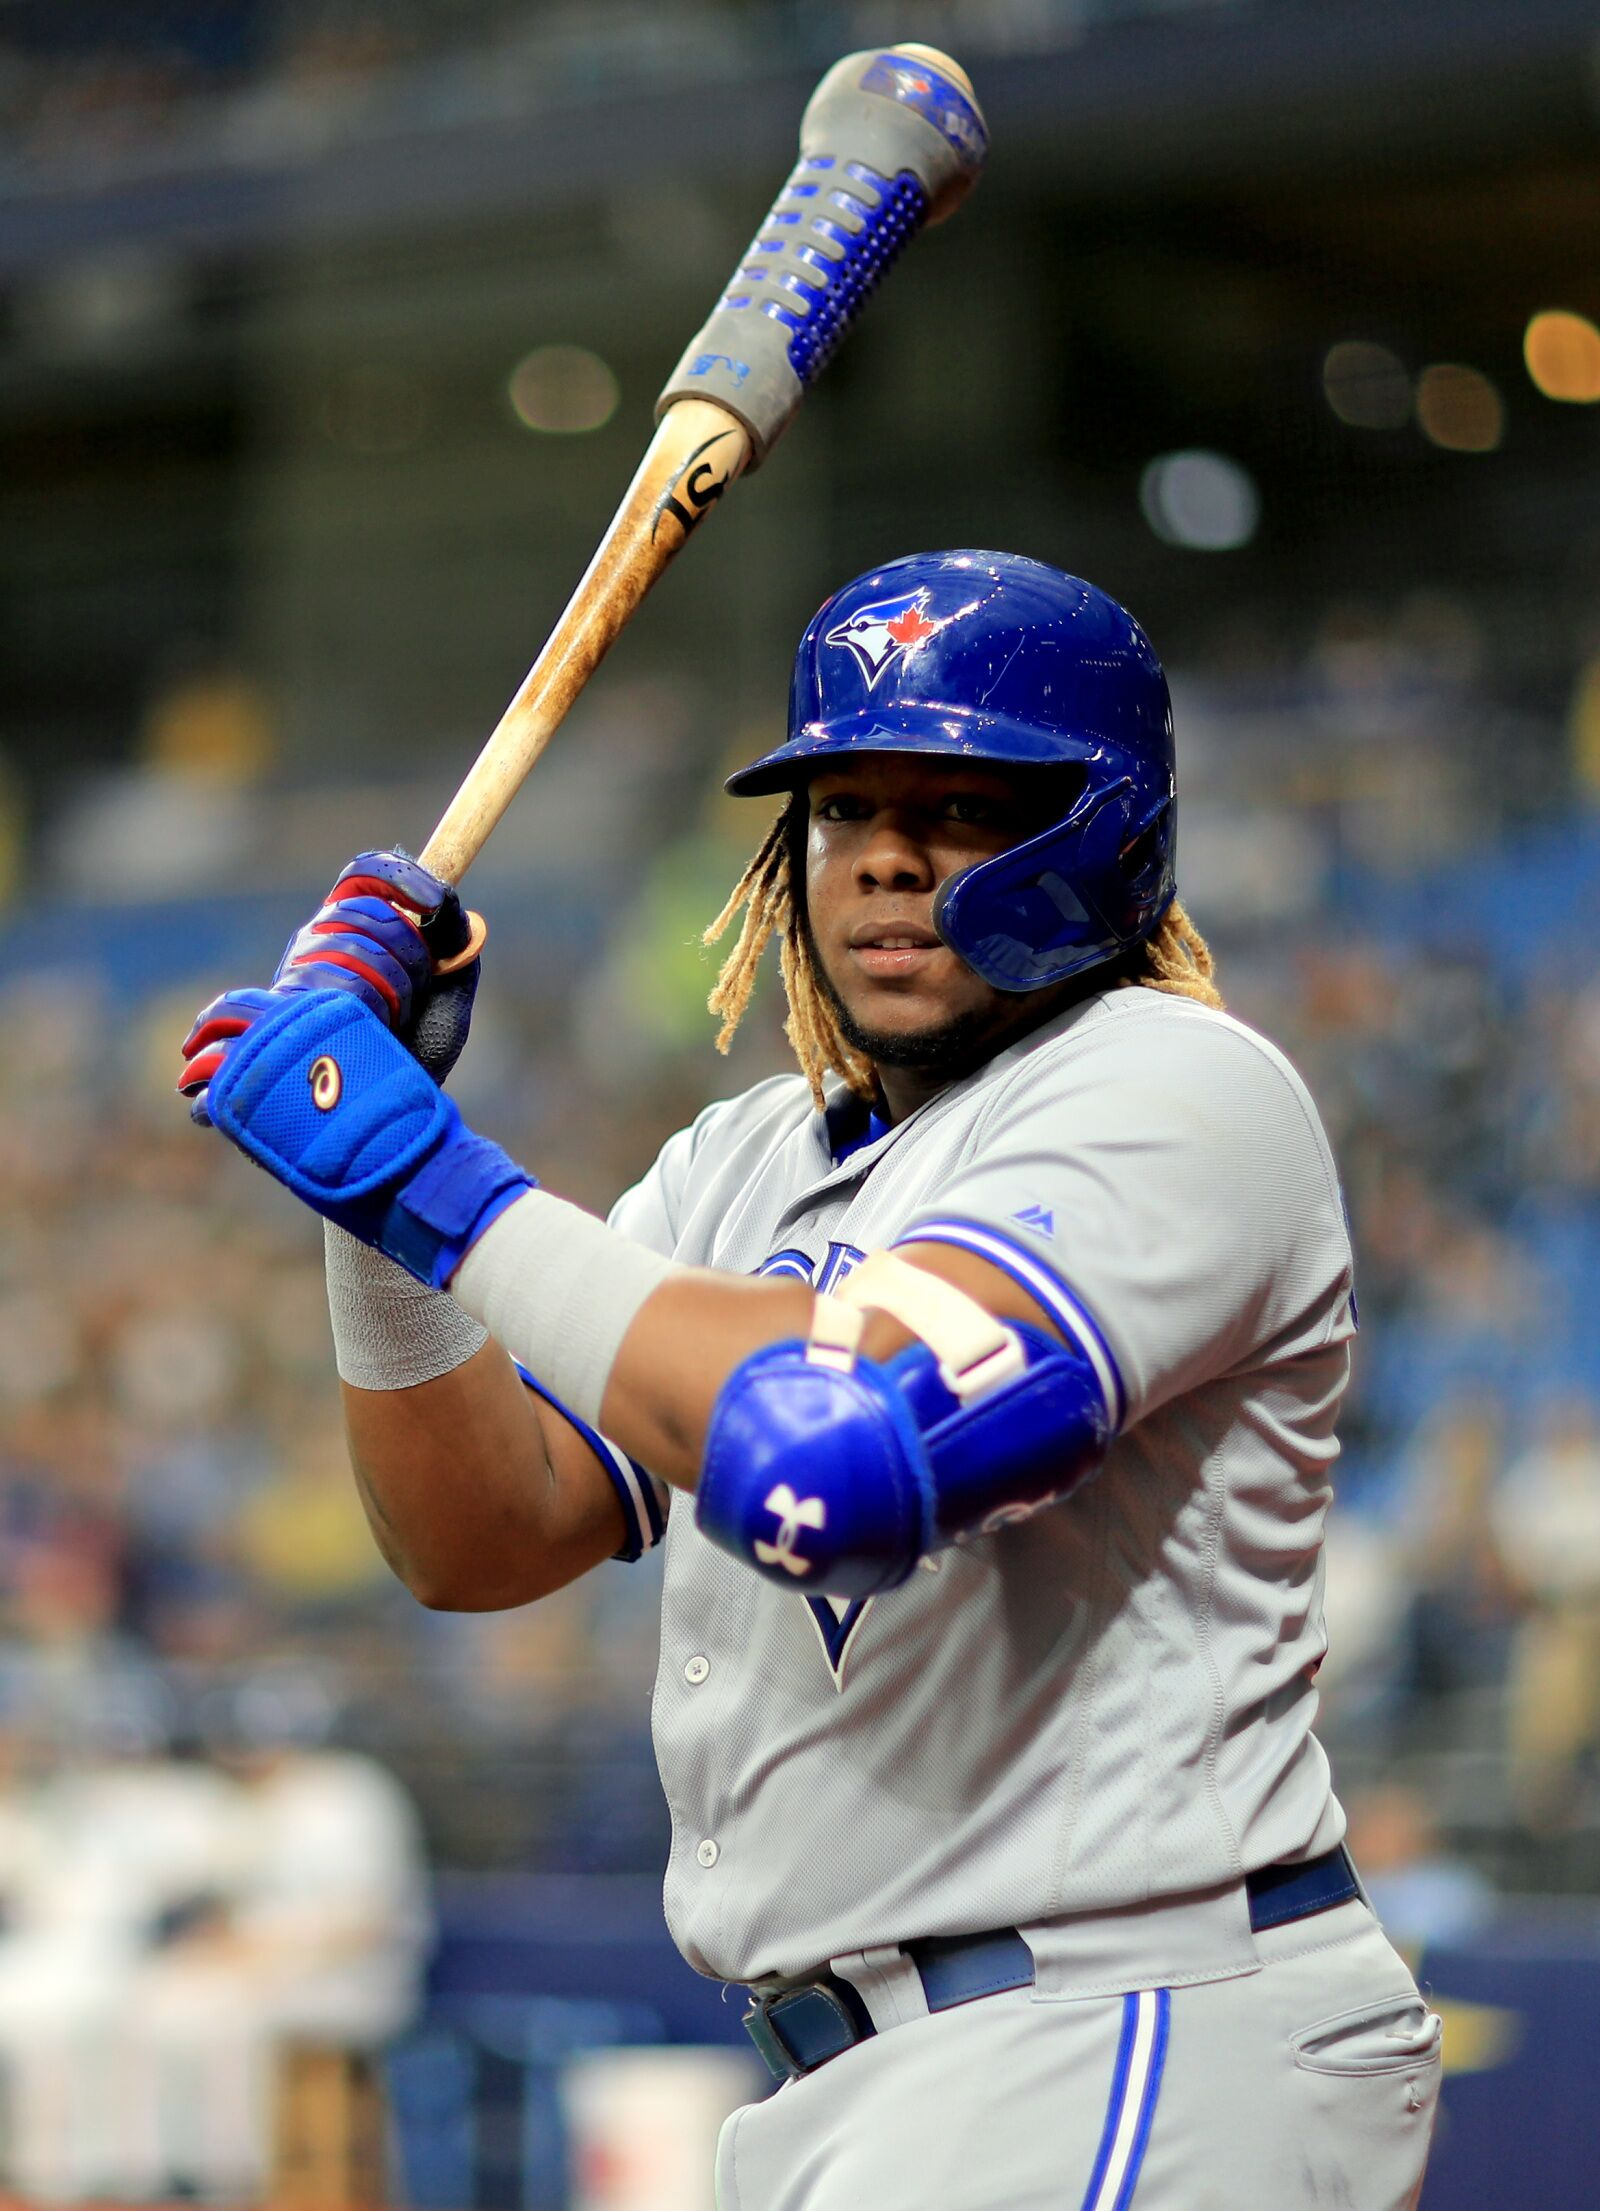 Blue Jays: Vladimir Guerrero Jr already leads the league in one category